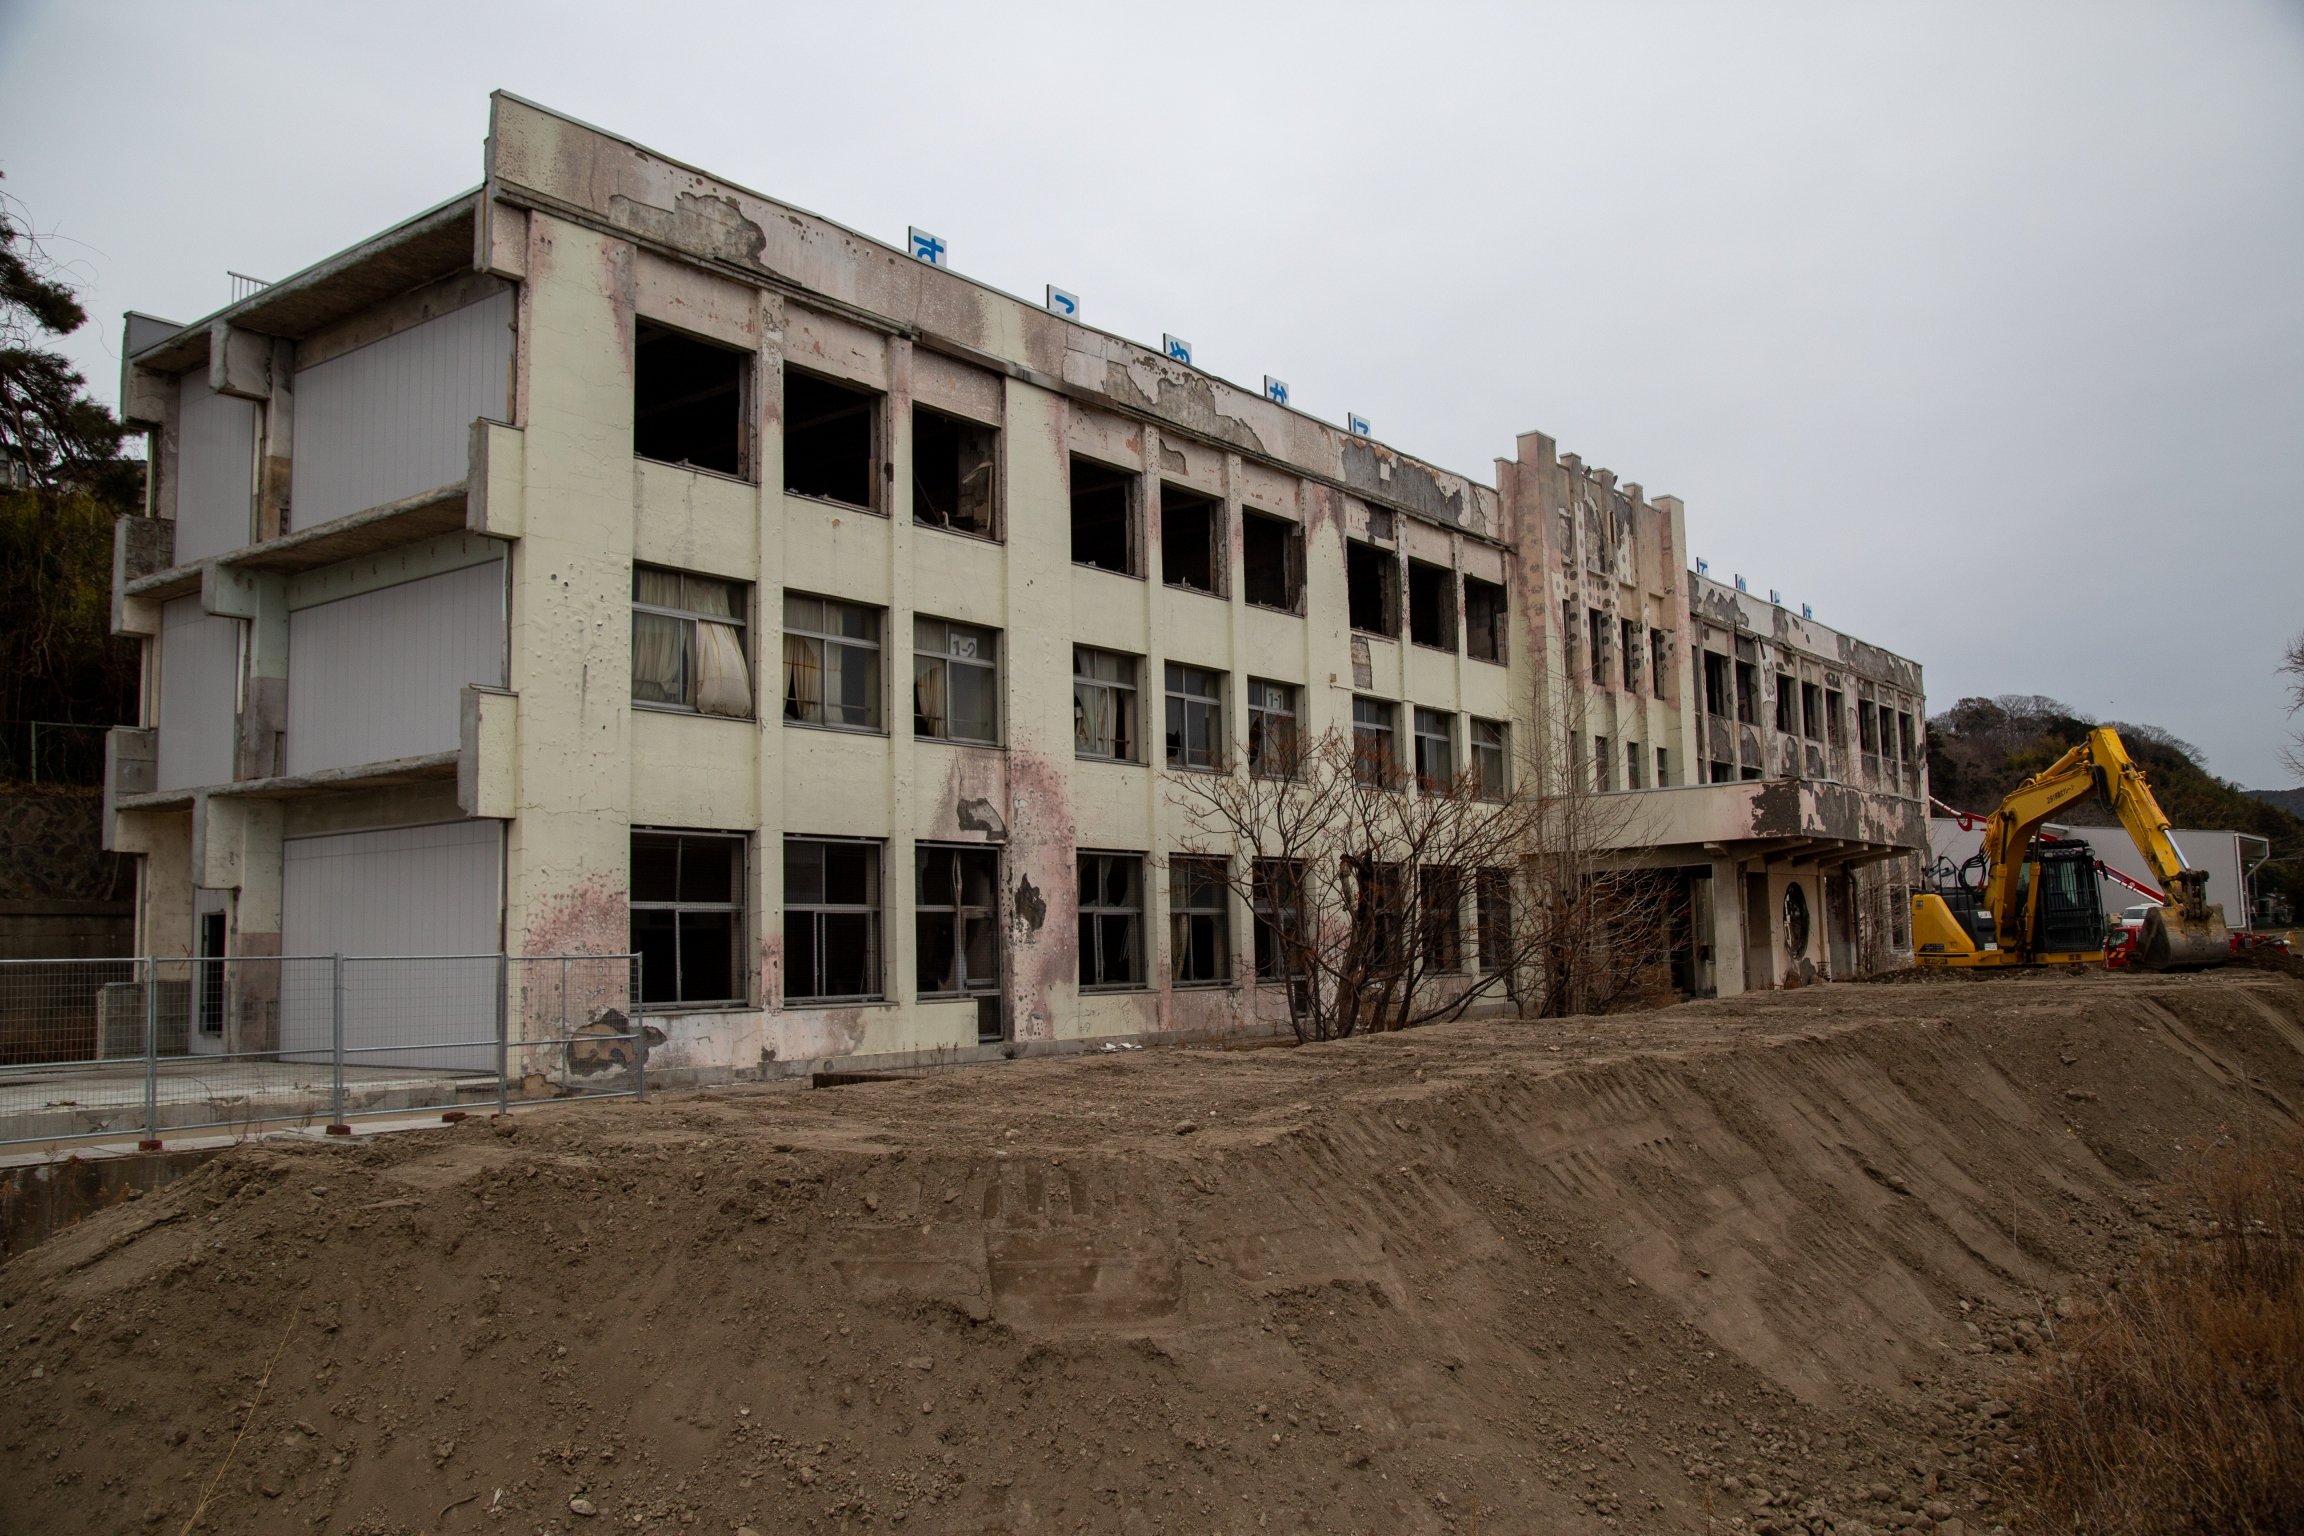 A school is shown burned with a crane at one end.